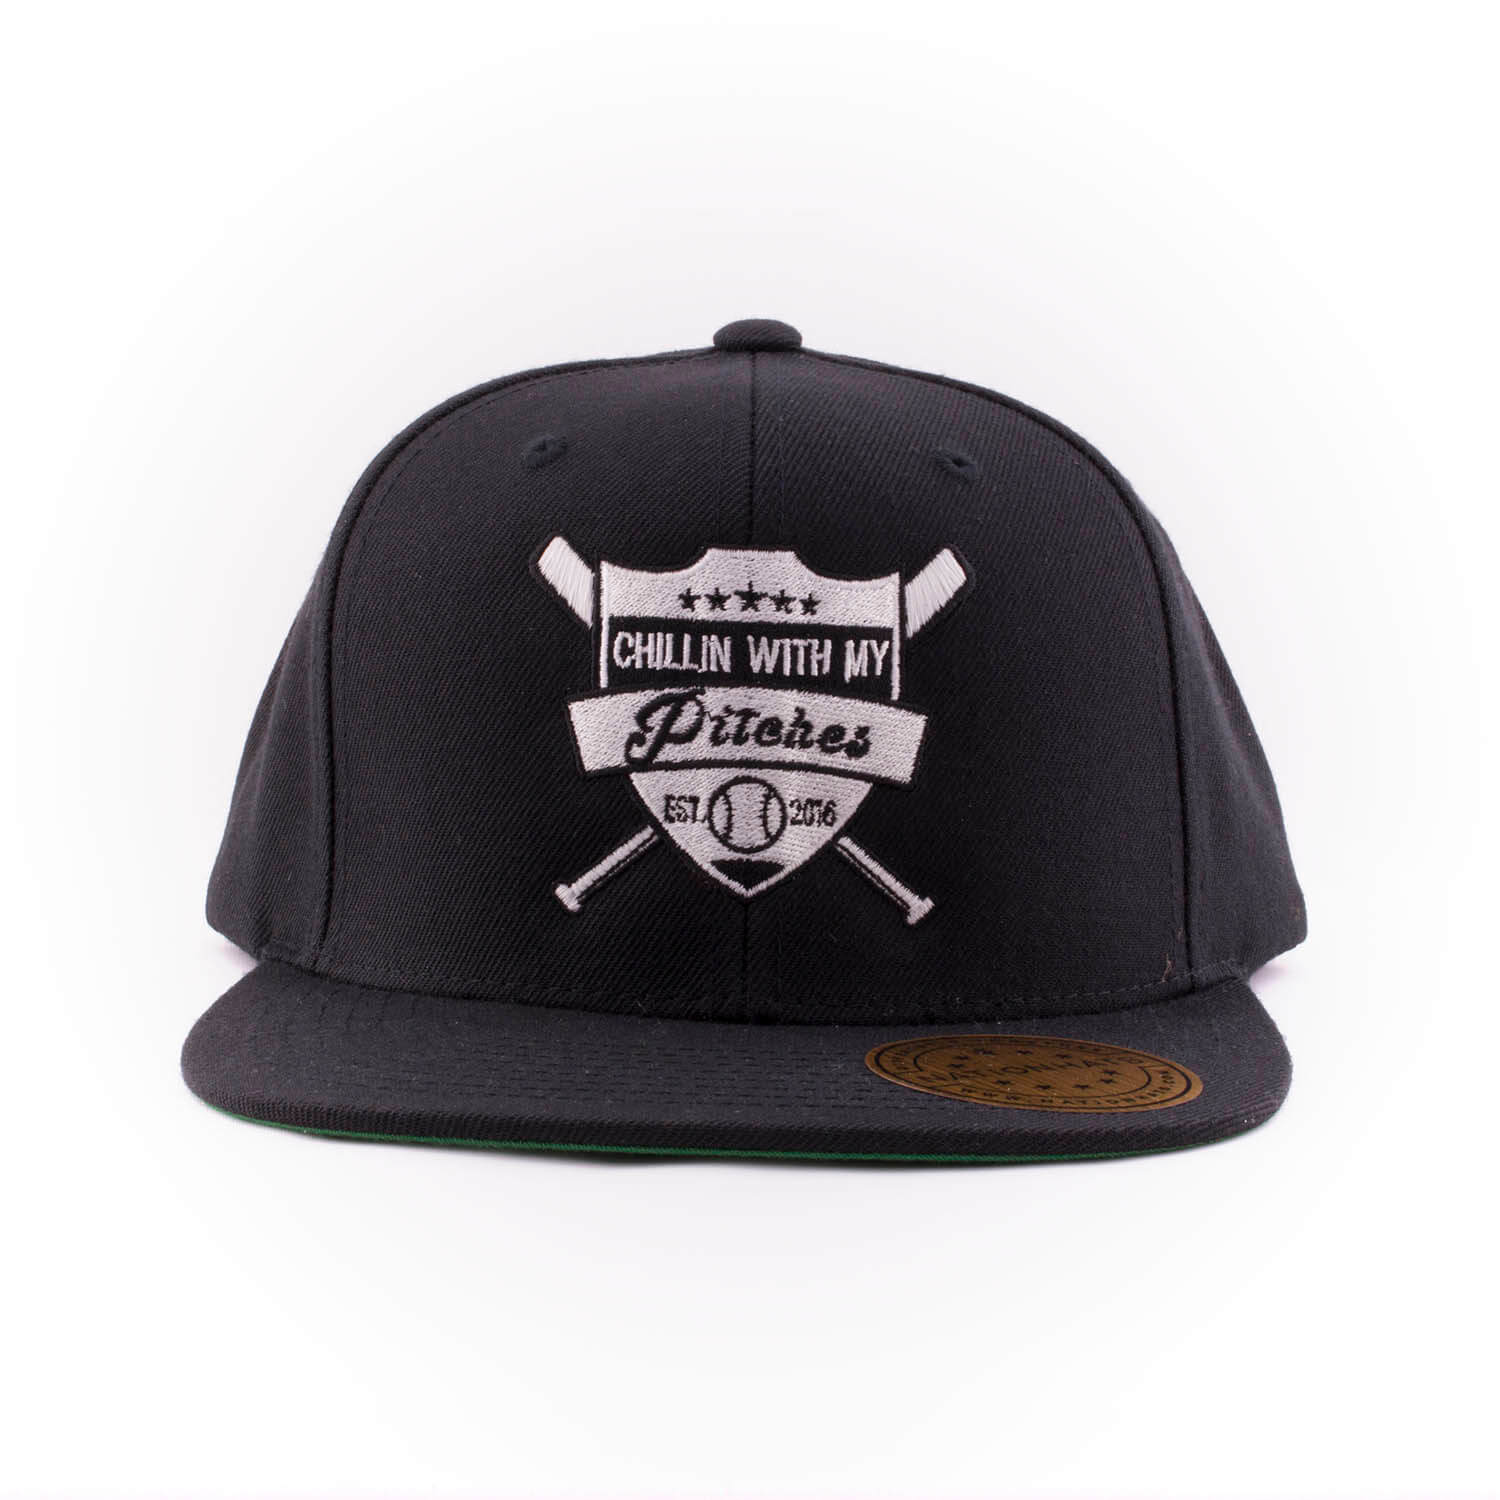 44975050e92 15209-pitches-6089m-classic-snapback-cap-yupoong-black-front ...